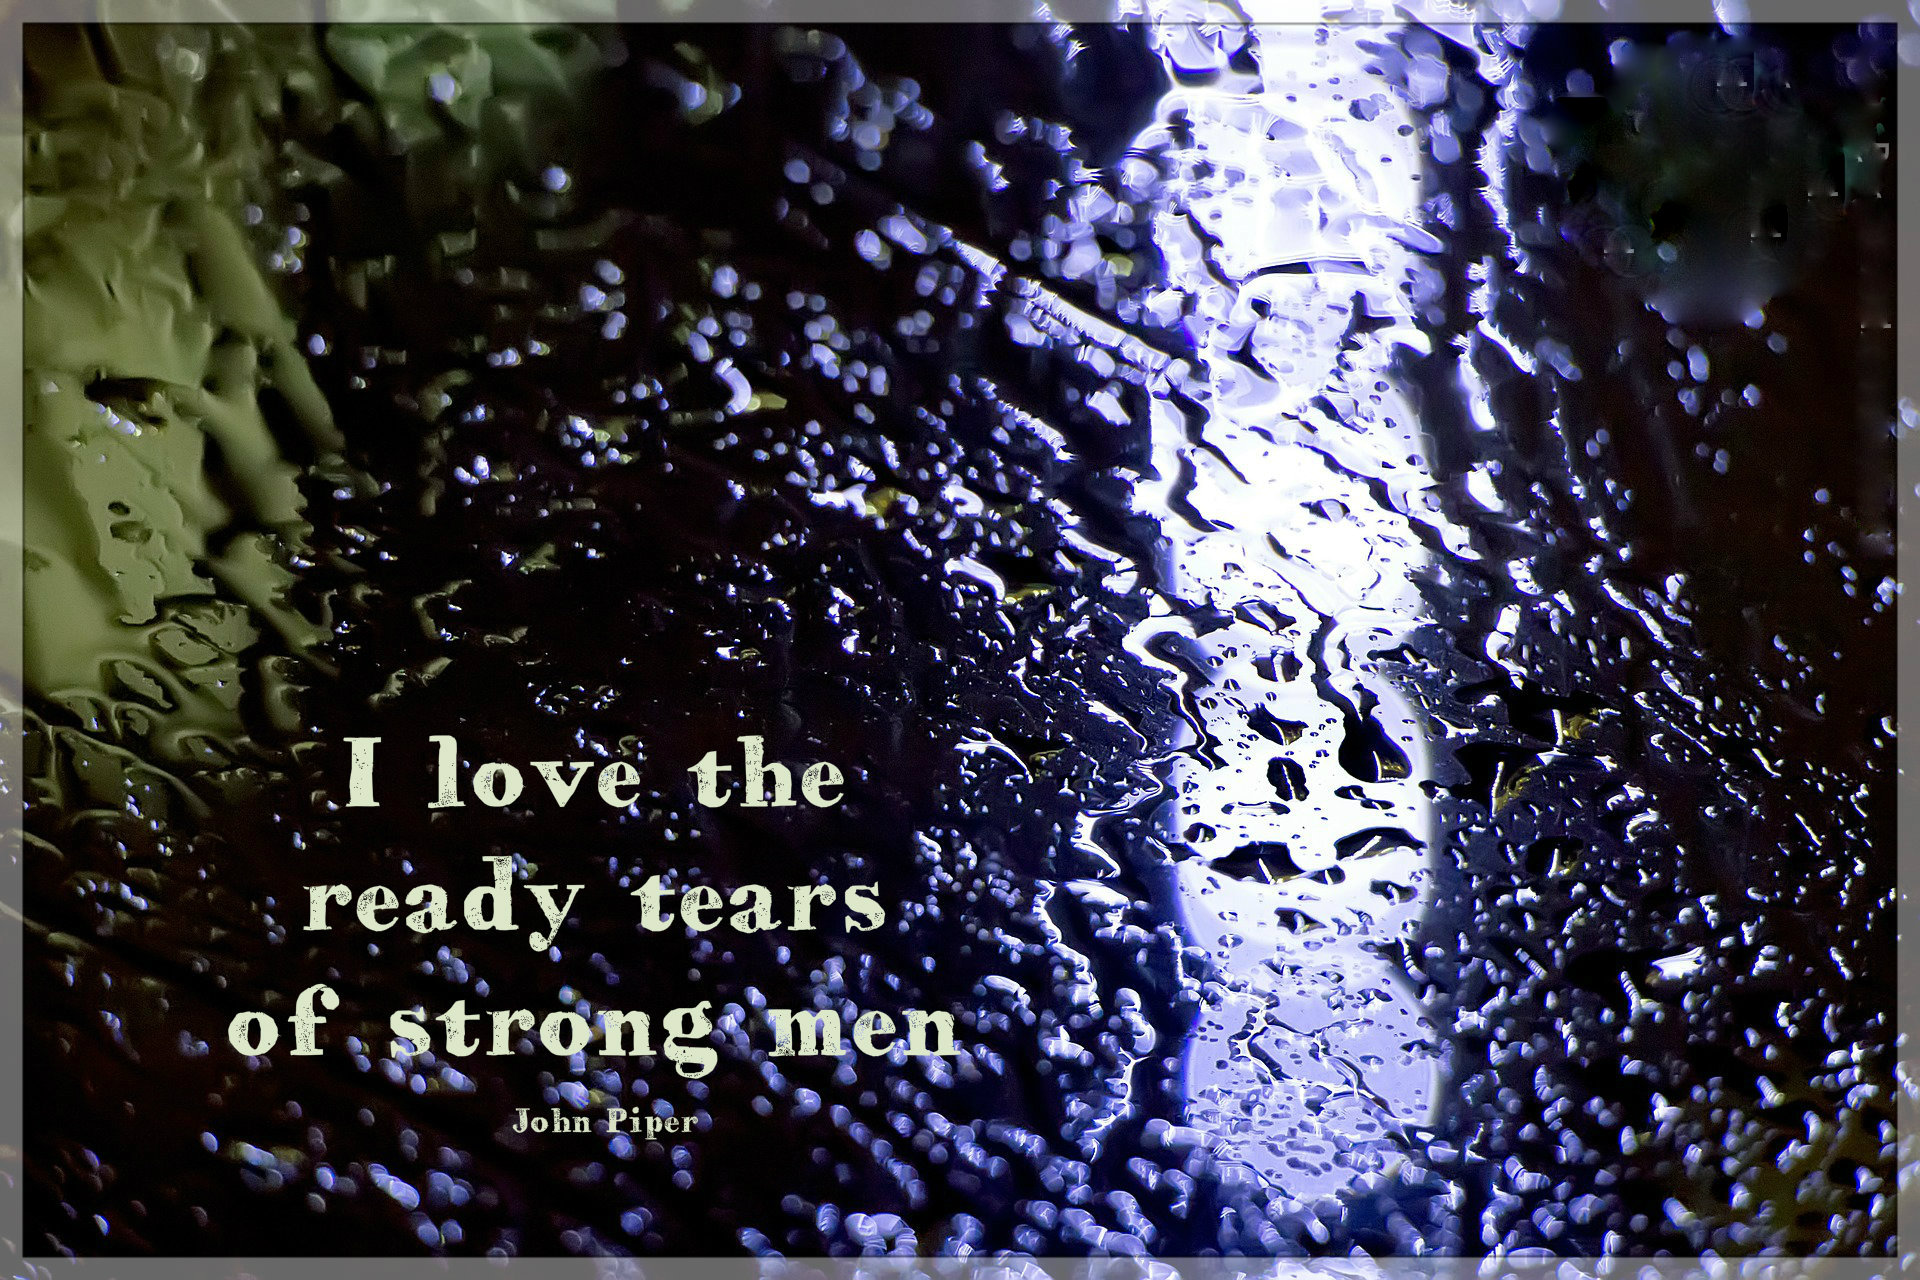 I love the ready tears of strong men